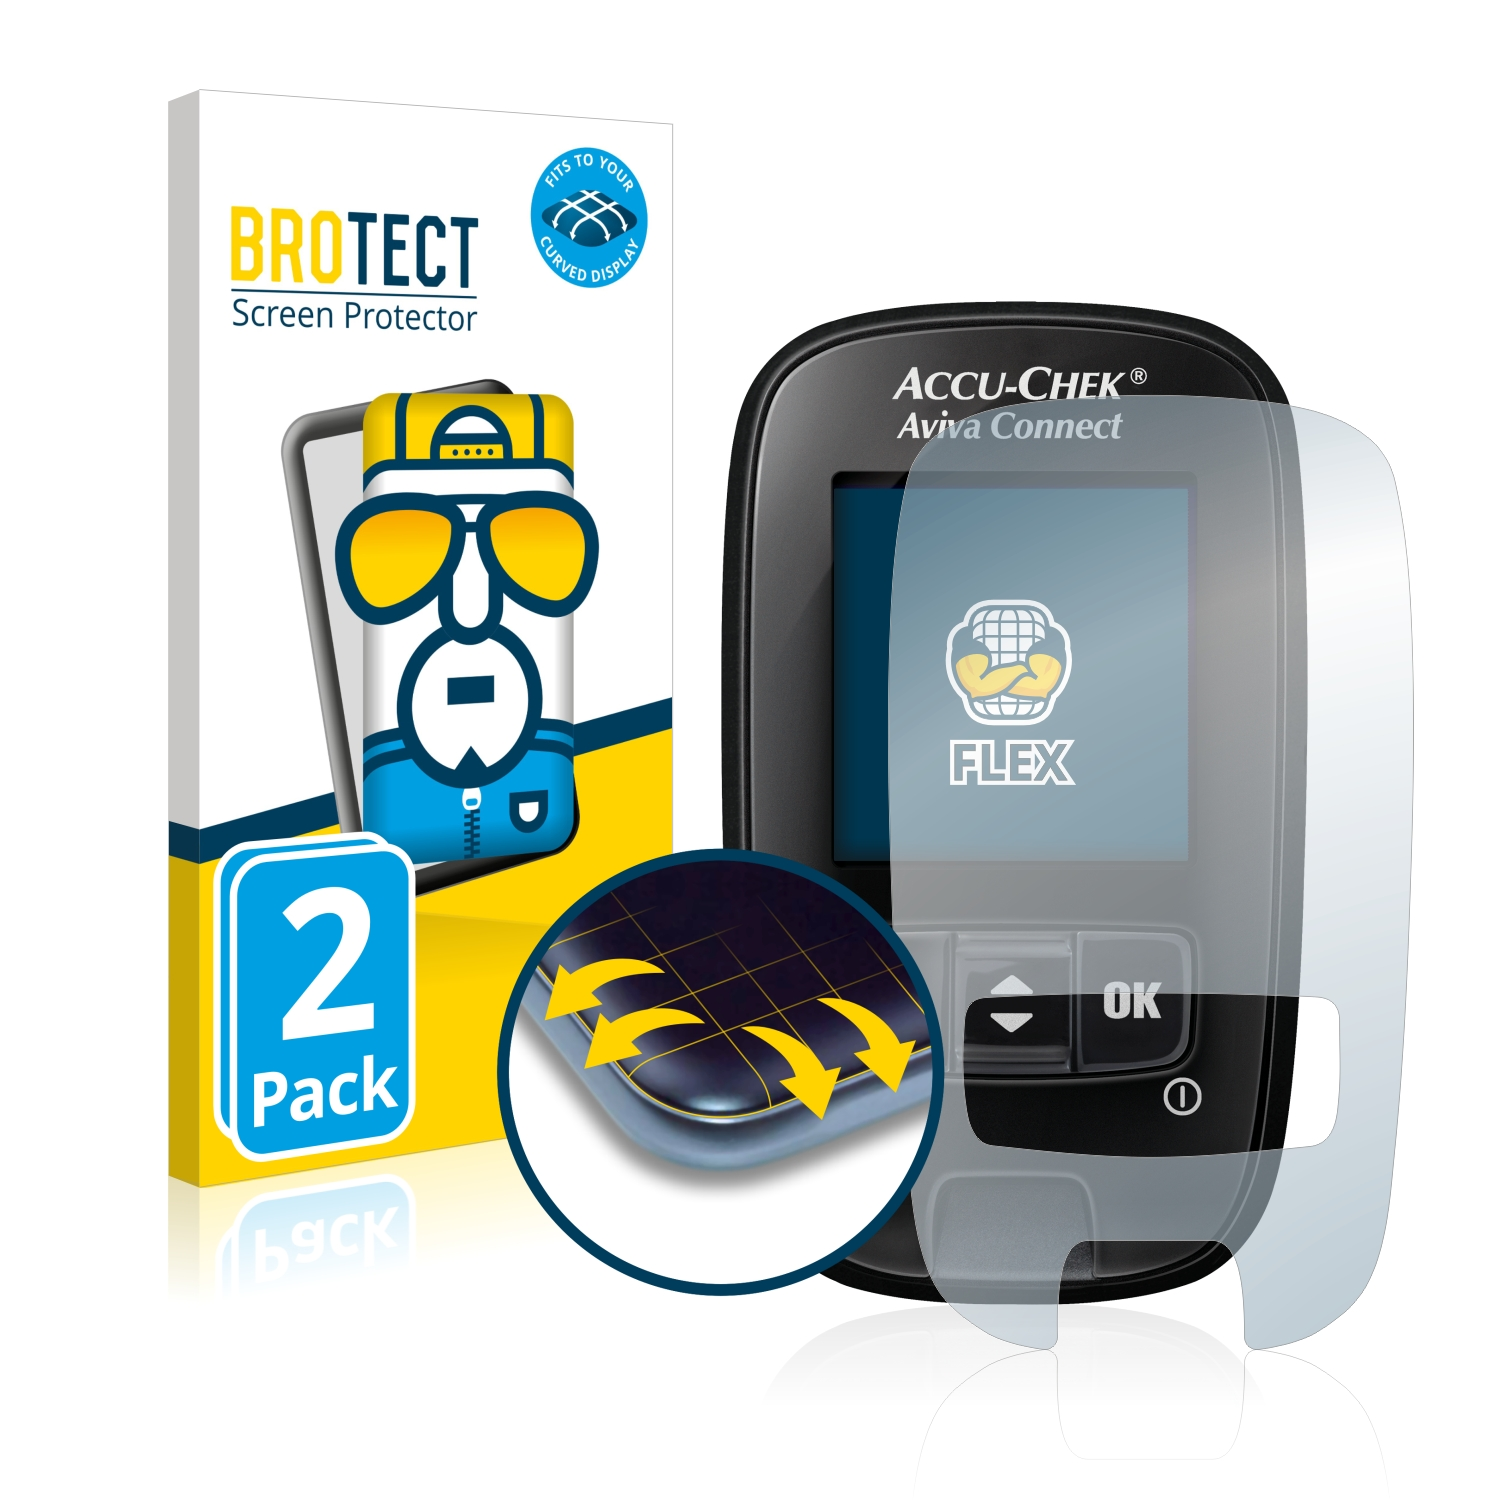 Ochranná fólie BROTECT Flex Full-Cover pro Accu-Chek Aviva Connect, 2ks